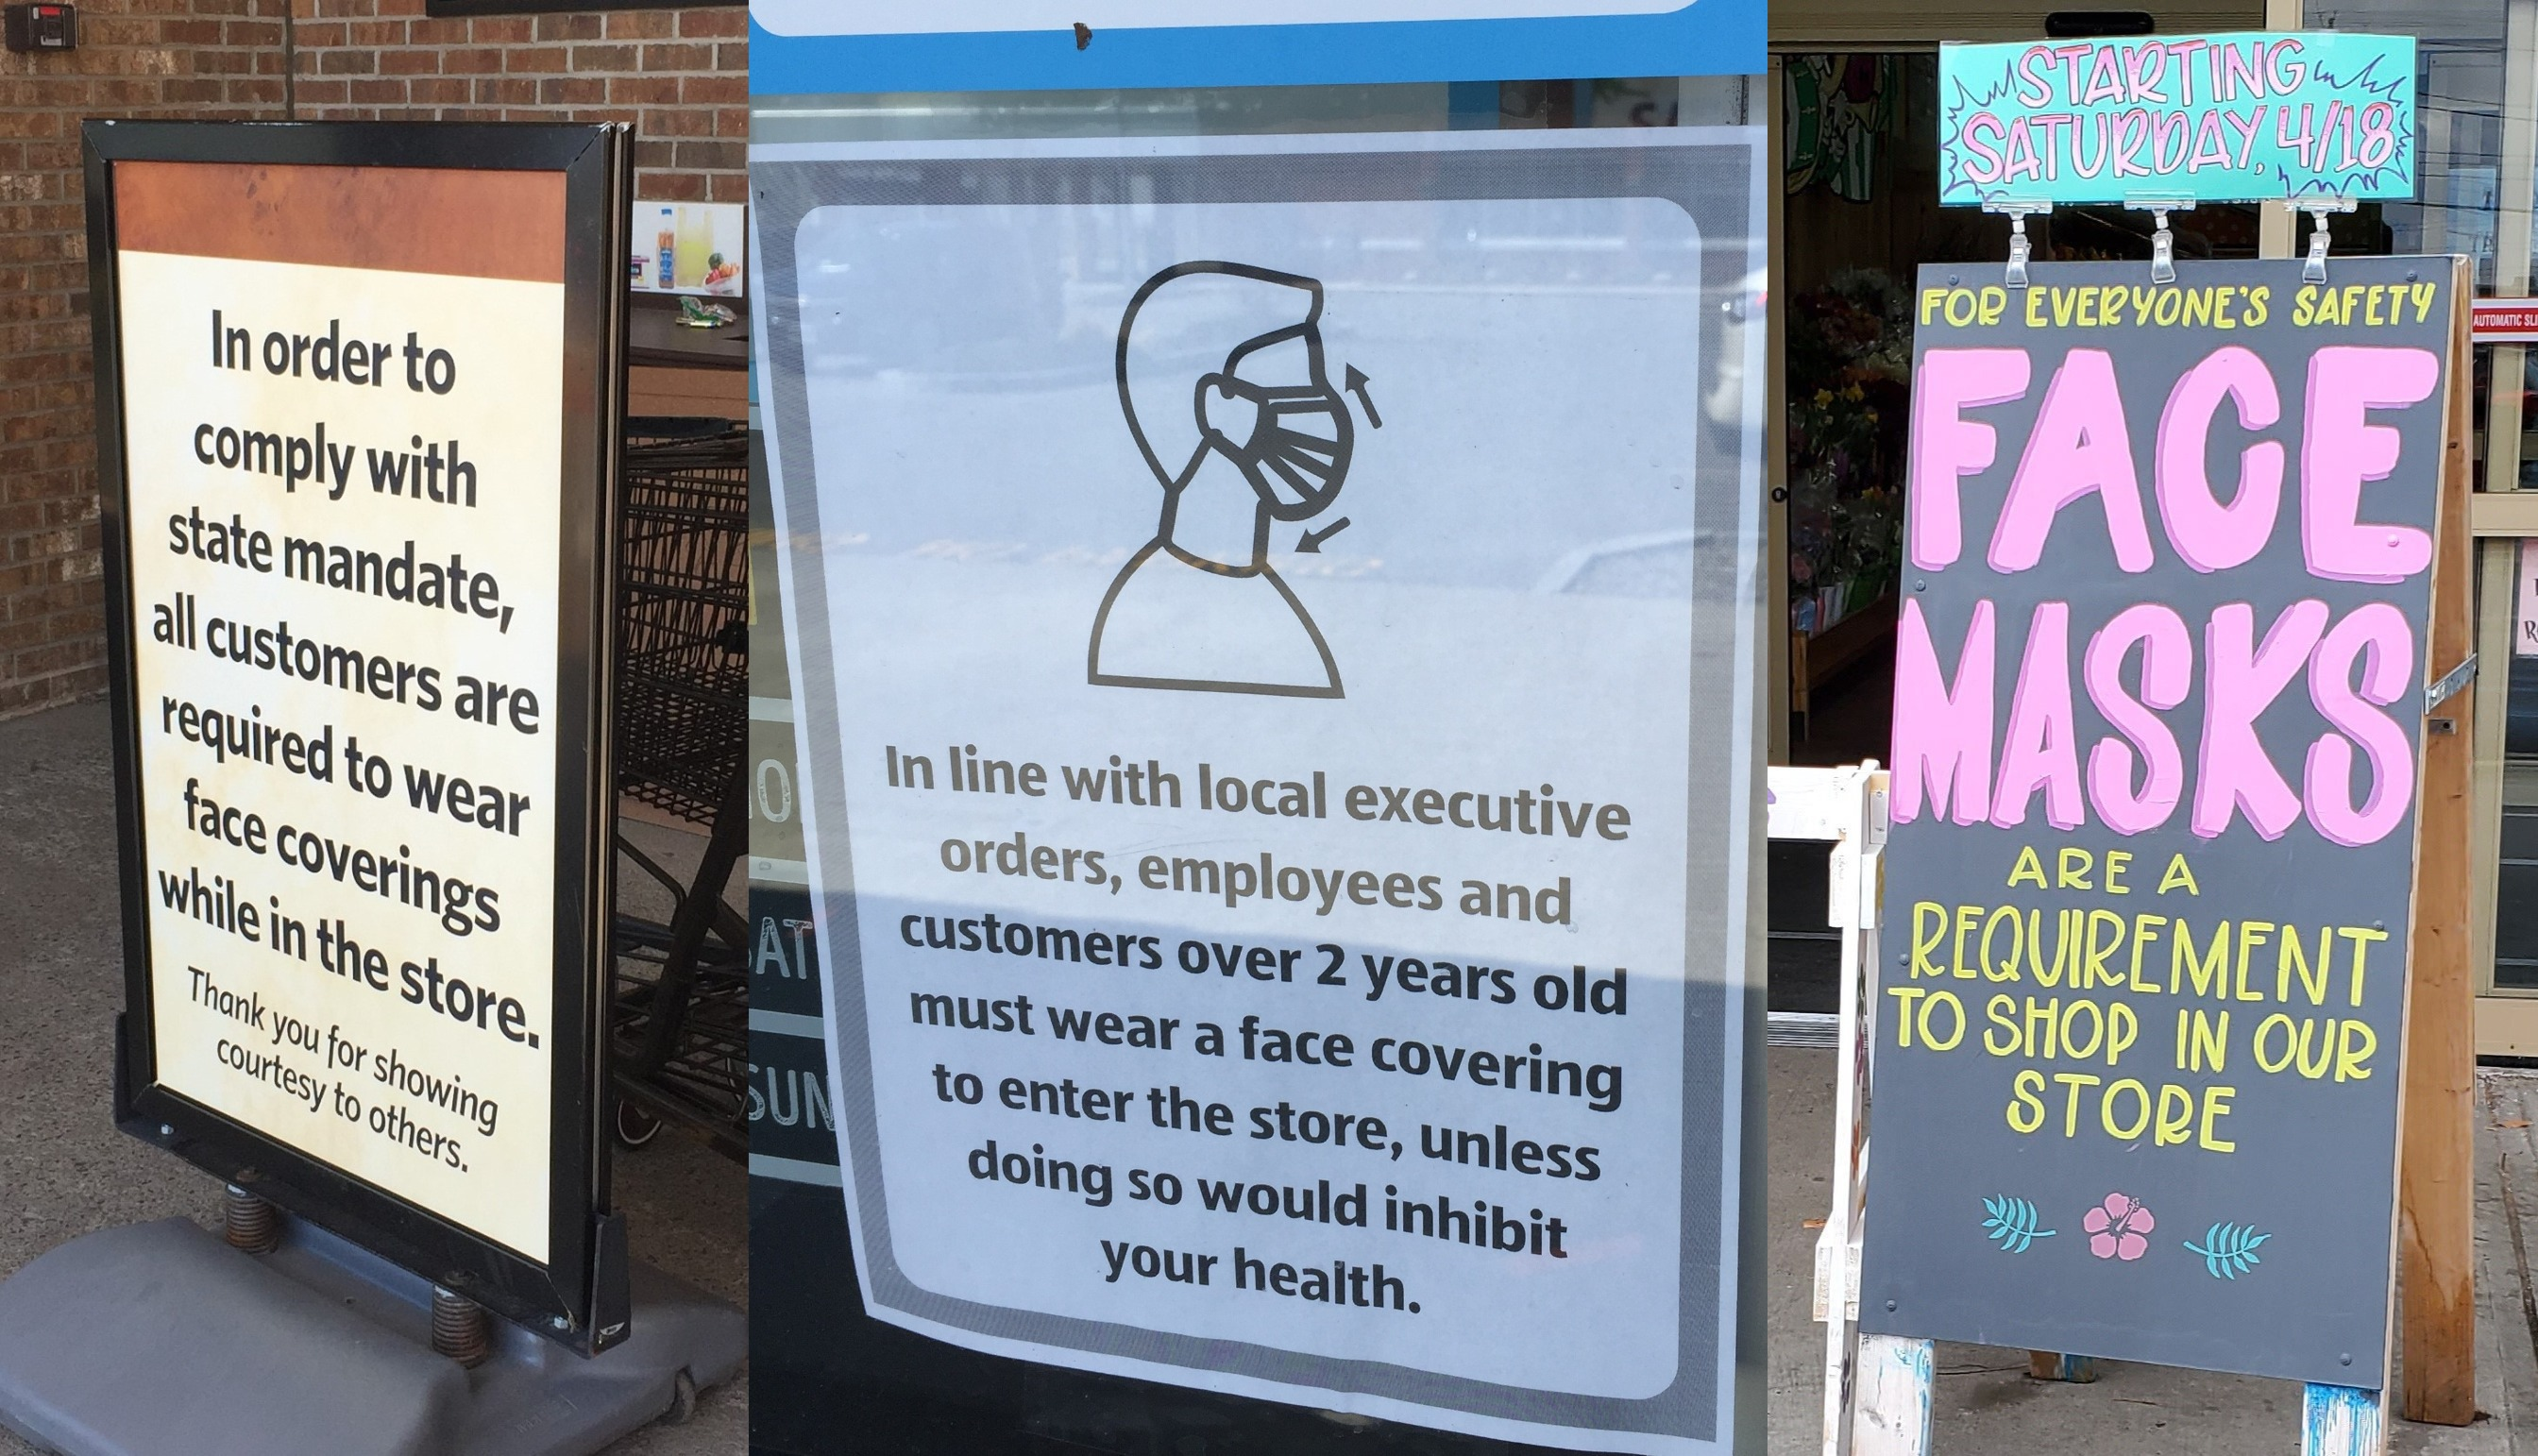 Wegmans, Tops, others want shoppers to wear masks, but won't ban ...